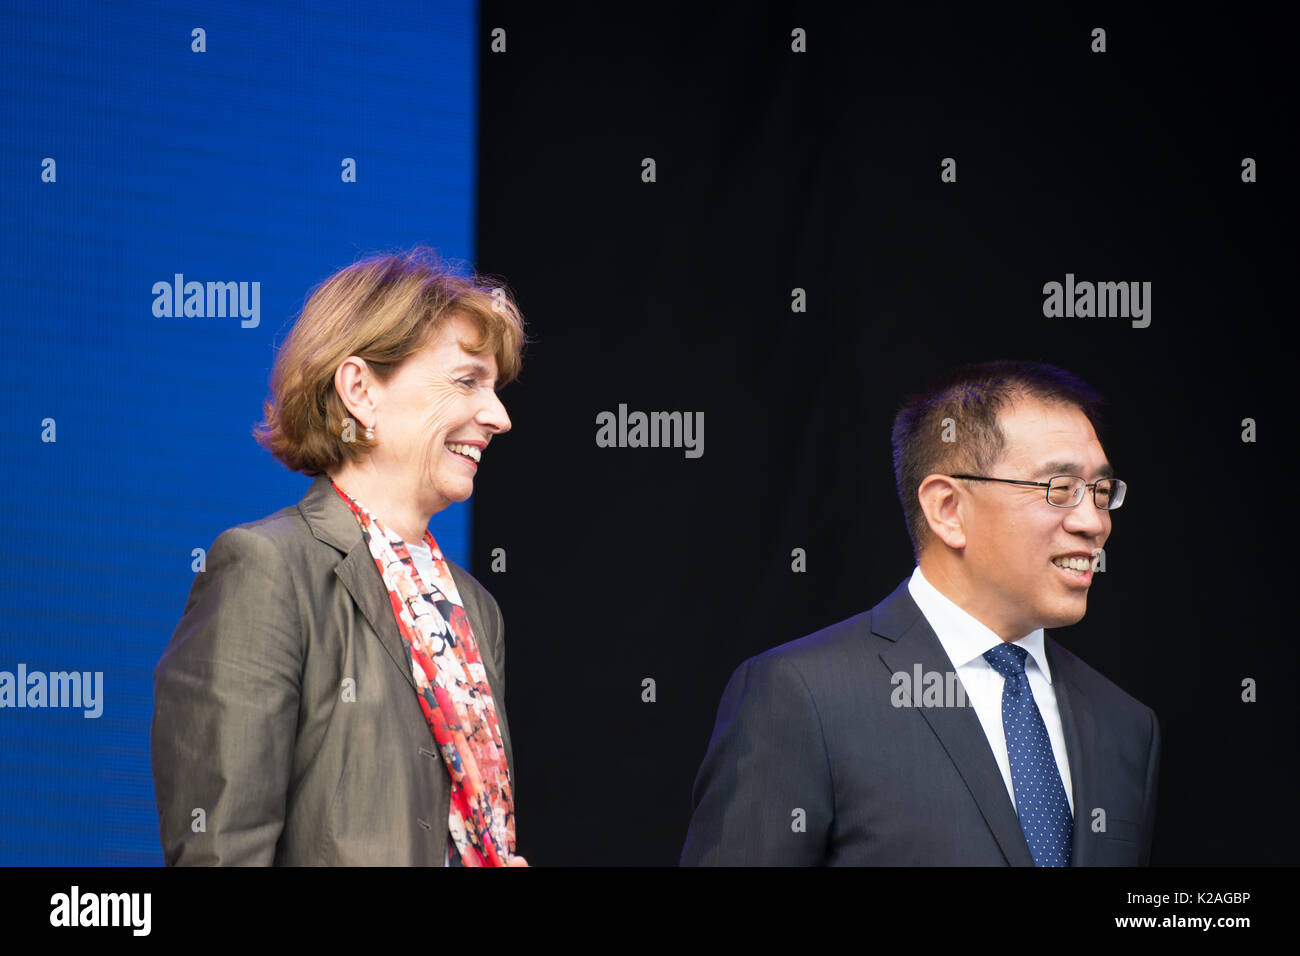 Mrs. Henriette Reker, Lord Mayor of Cologne, and Mr. Ning Wang, Vice Mayor of Peking, at the China Festival 2017 in Cologne, Germany. - Stock Image